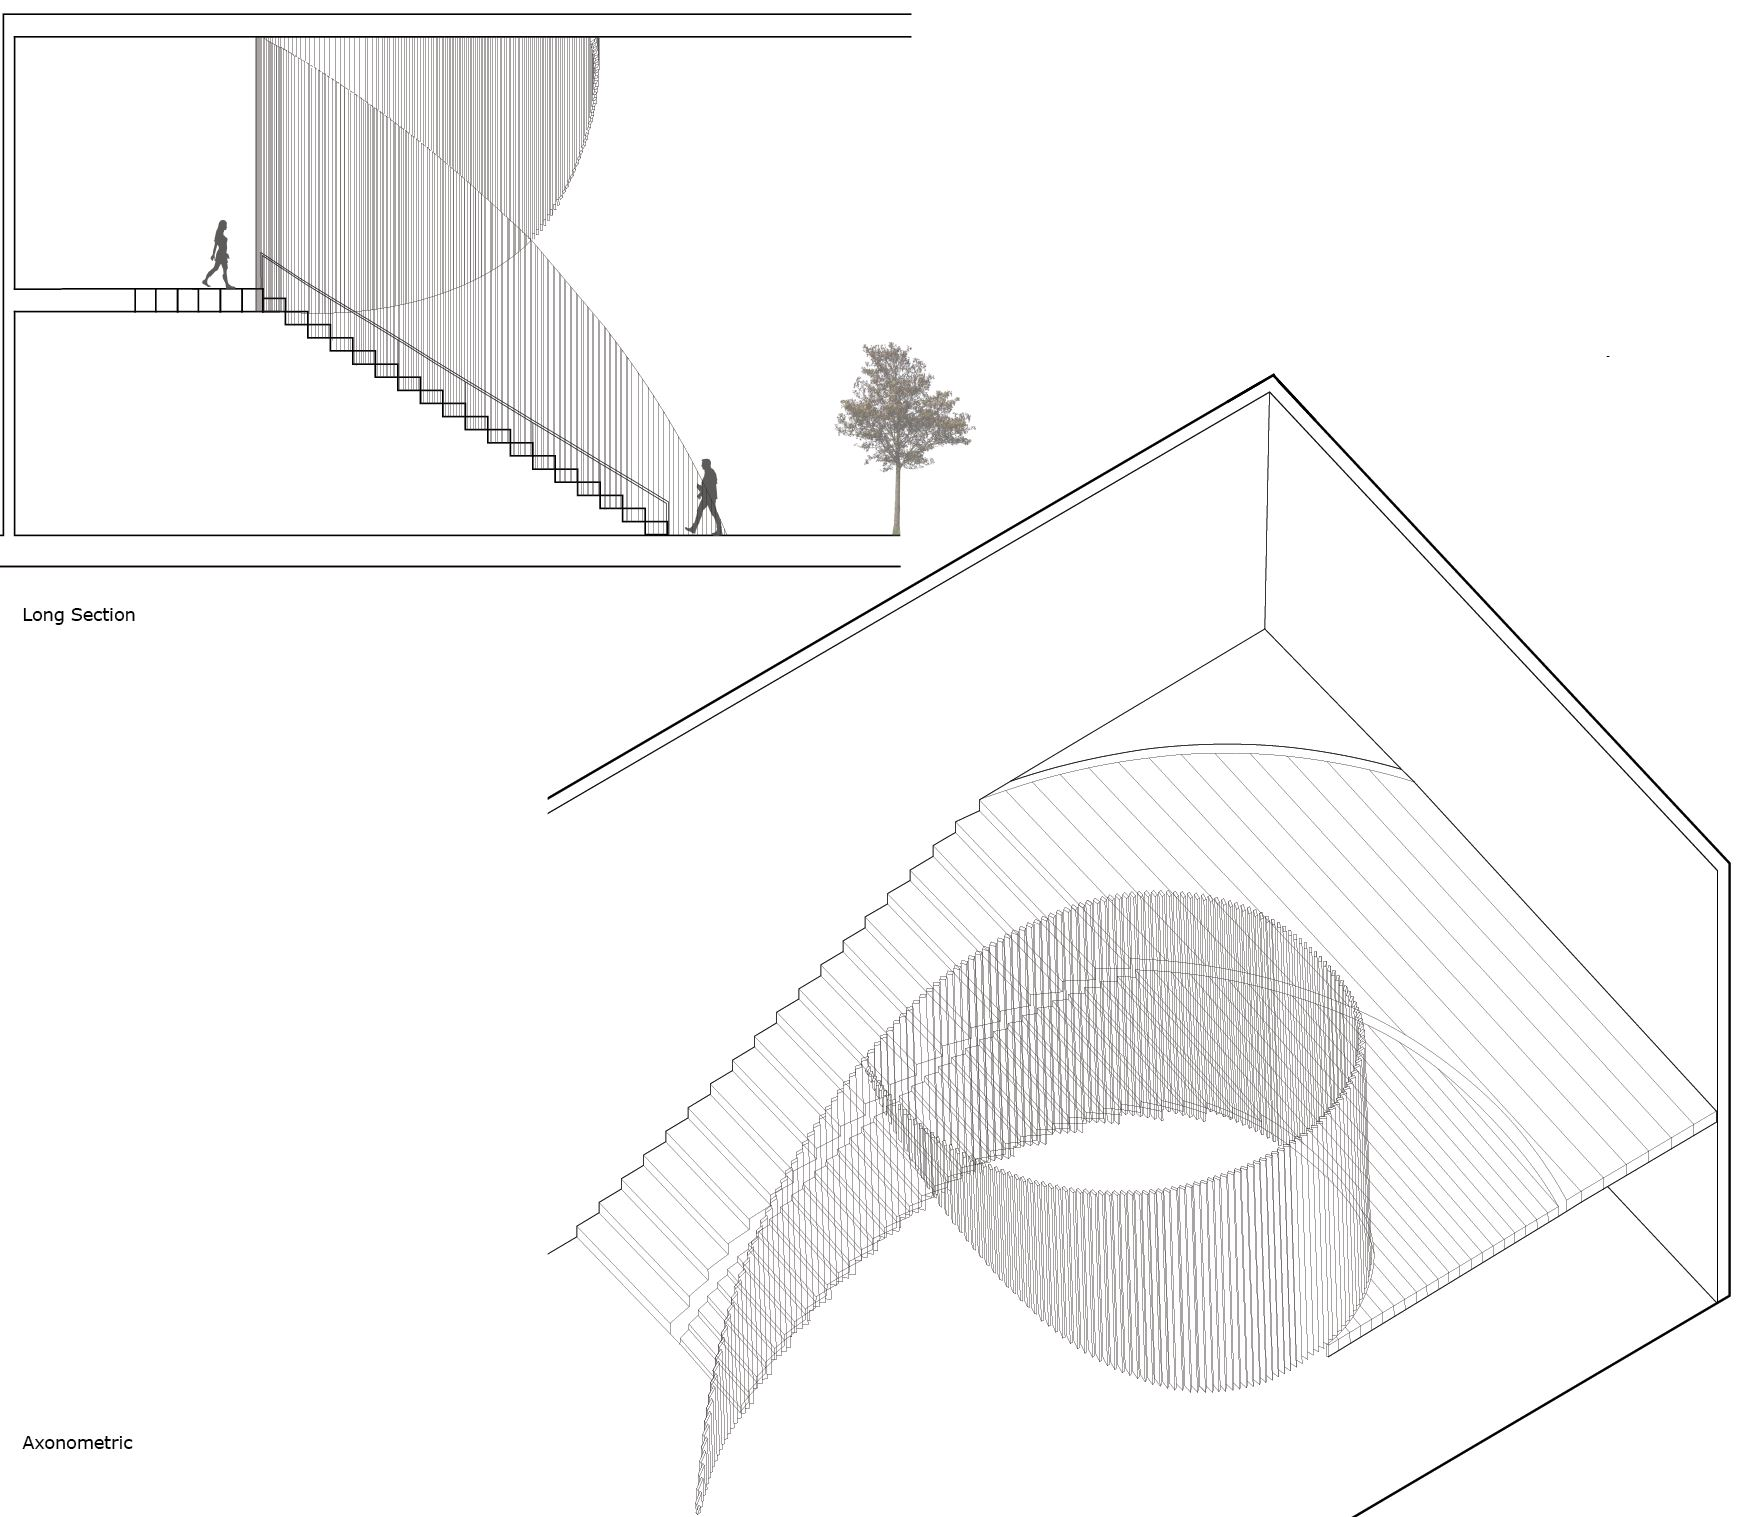 Staircase Section and Axonometric